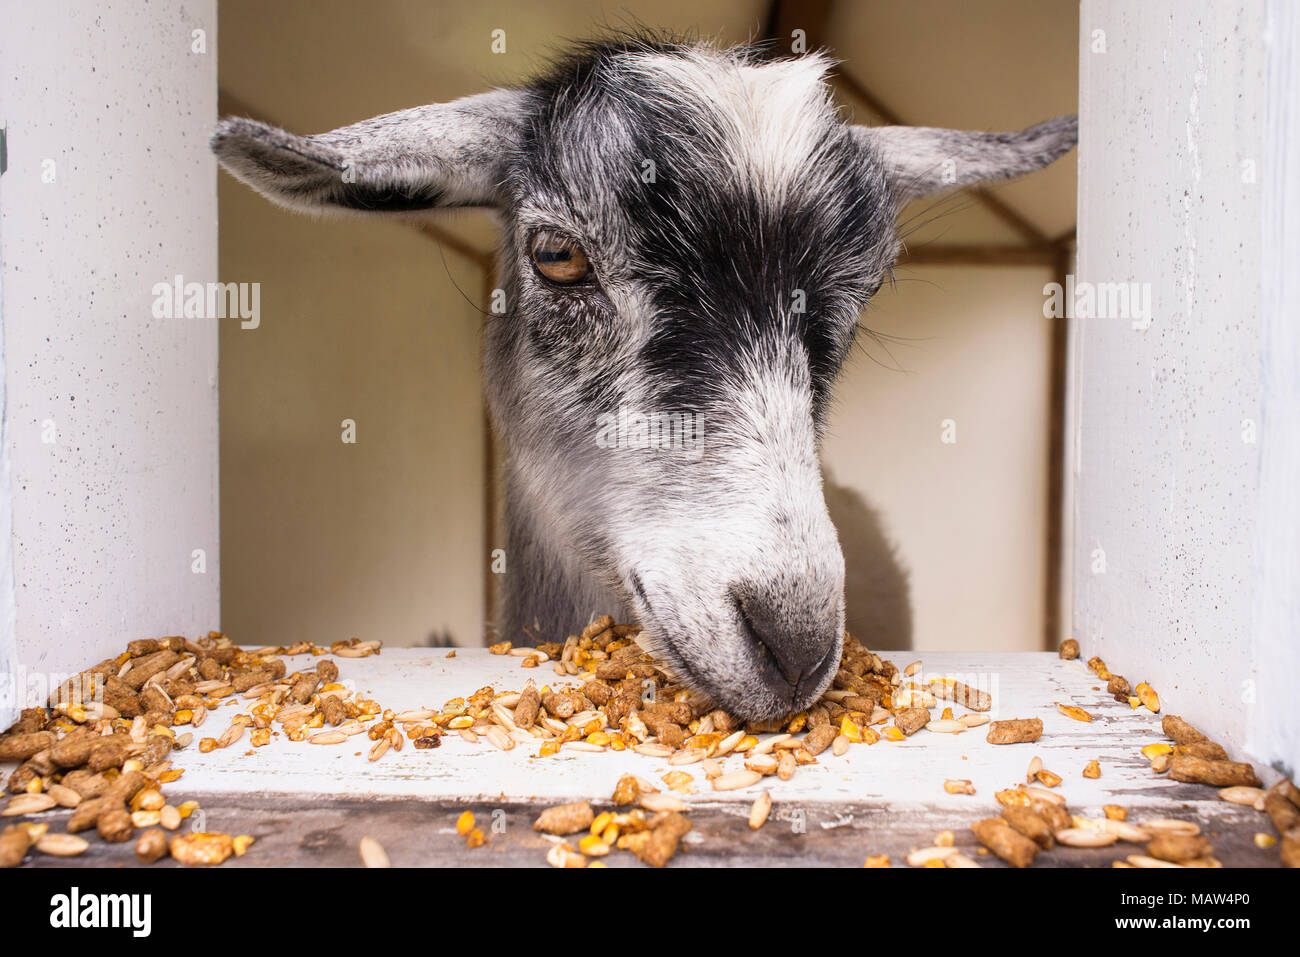 A close up of a goat eating grain and pellets. - Stock Image